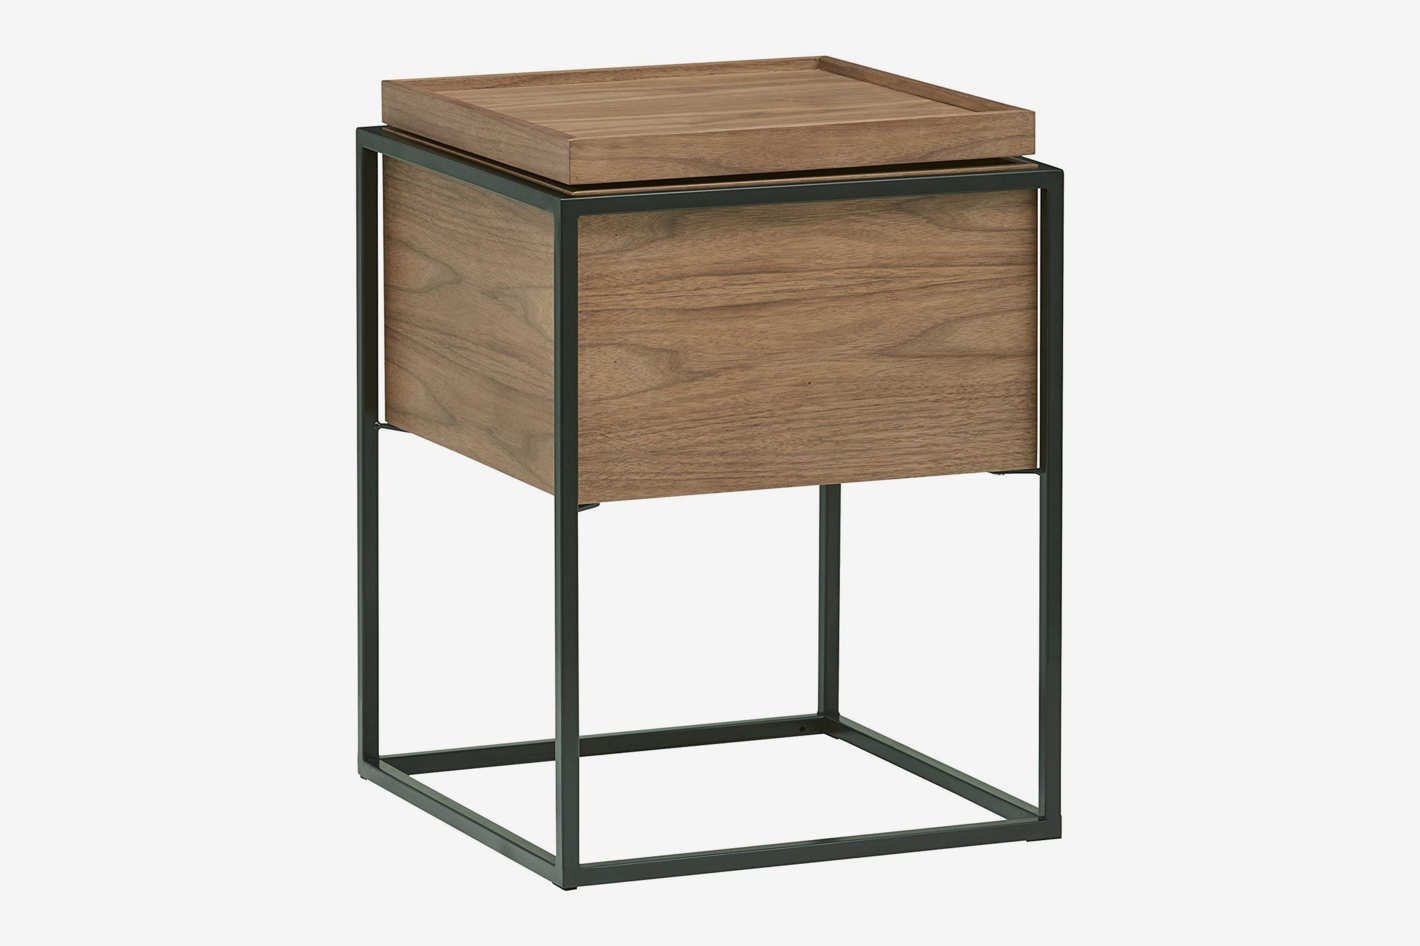 rivet furniture line accent table west elm axel lid storage wood and metal side target kitchen acacia coffee half wall shallow console linens modern black end round occasional